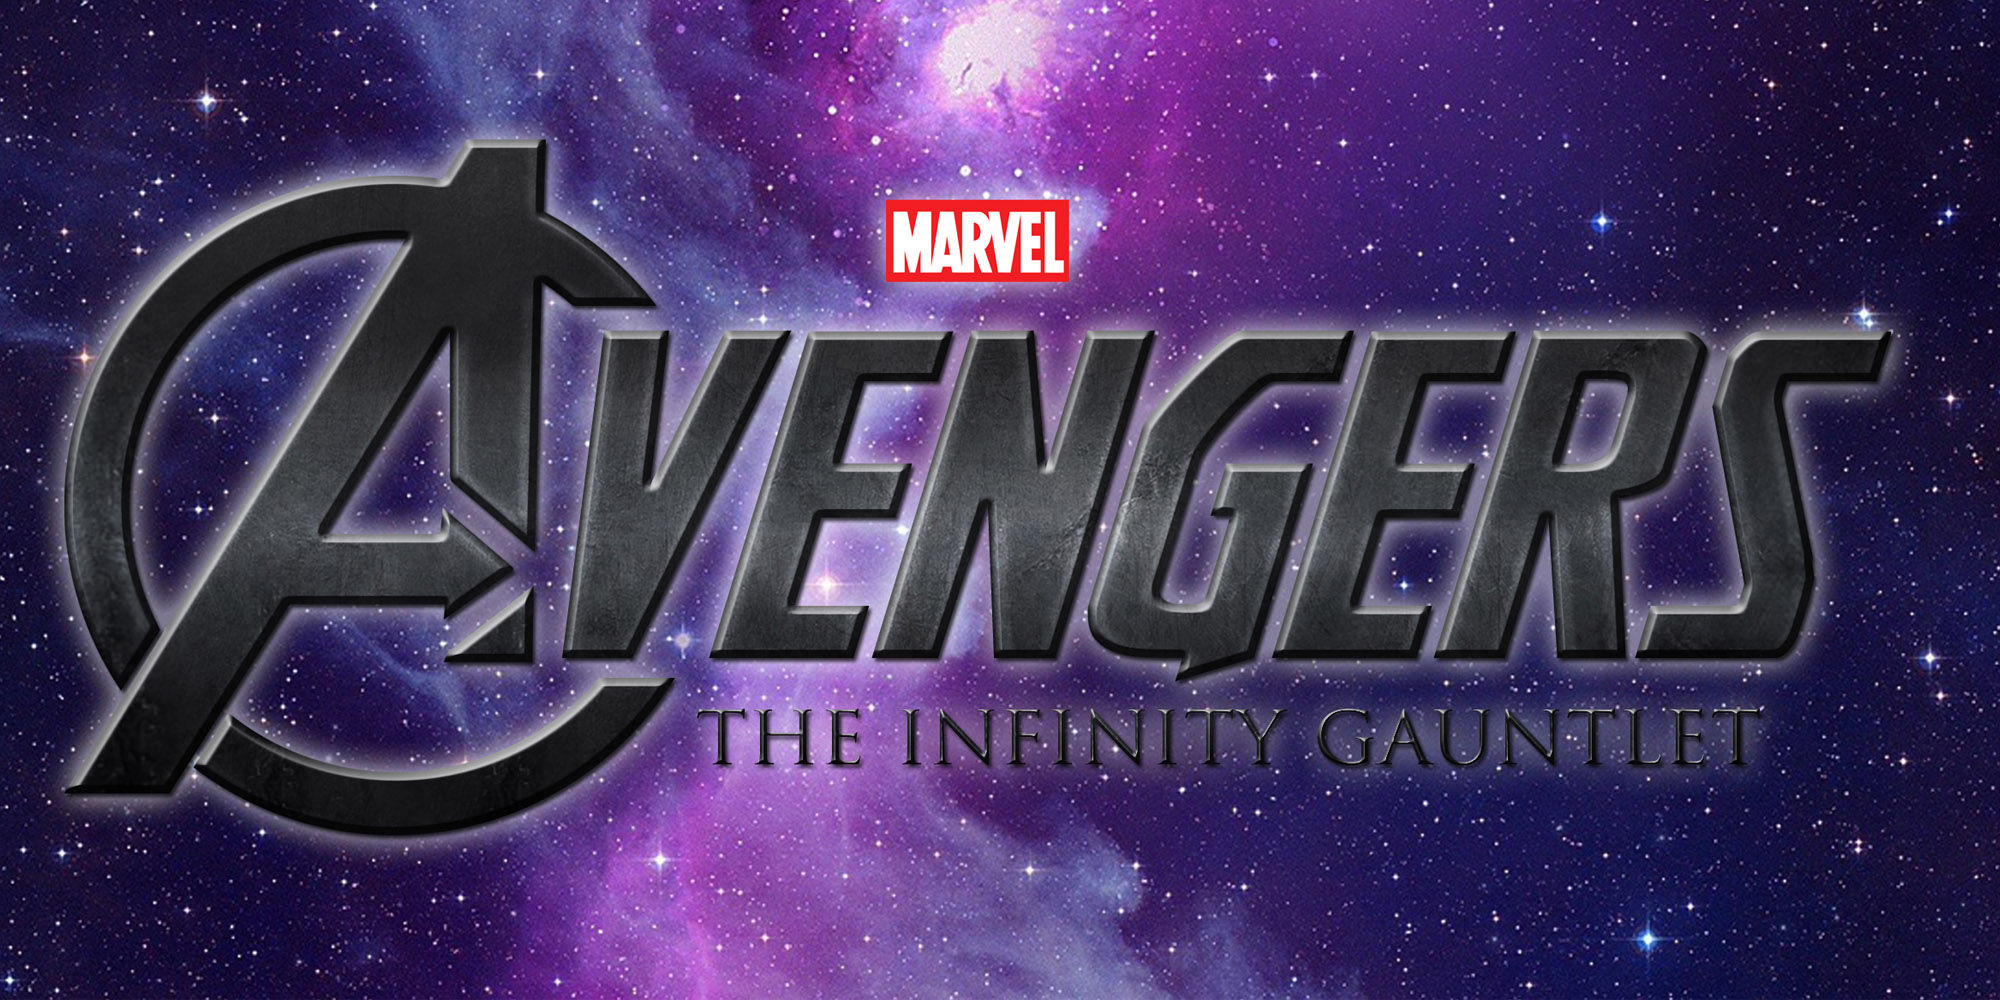 What Titles Should Avengers: Infinity War Use Instead?